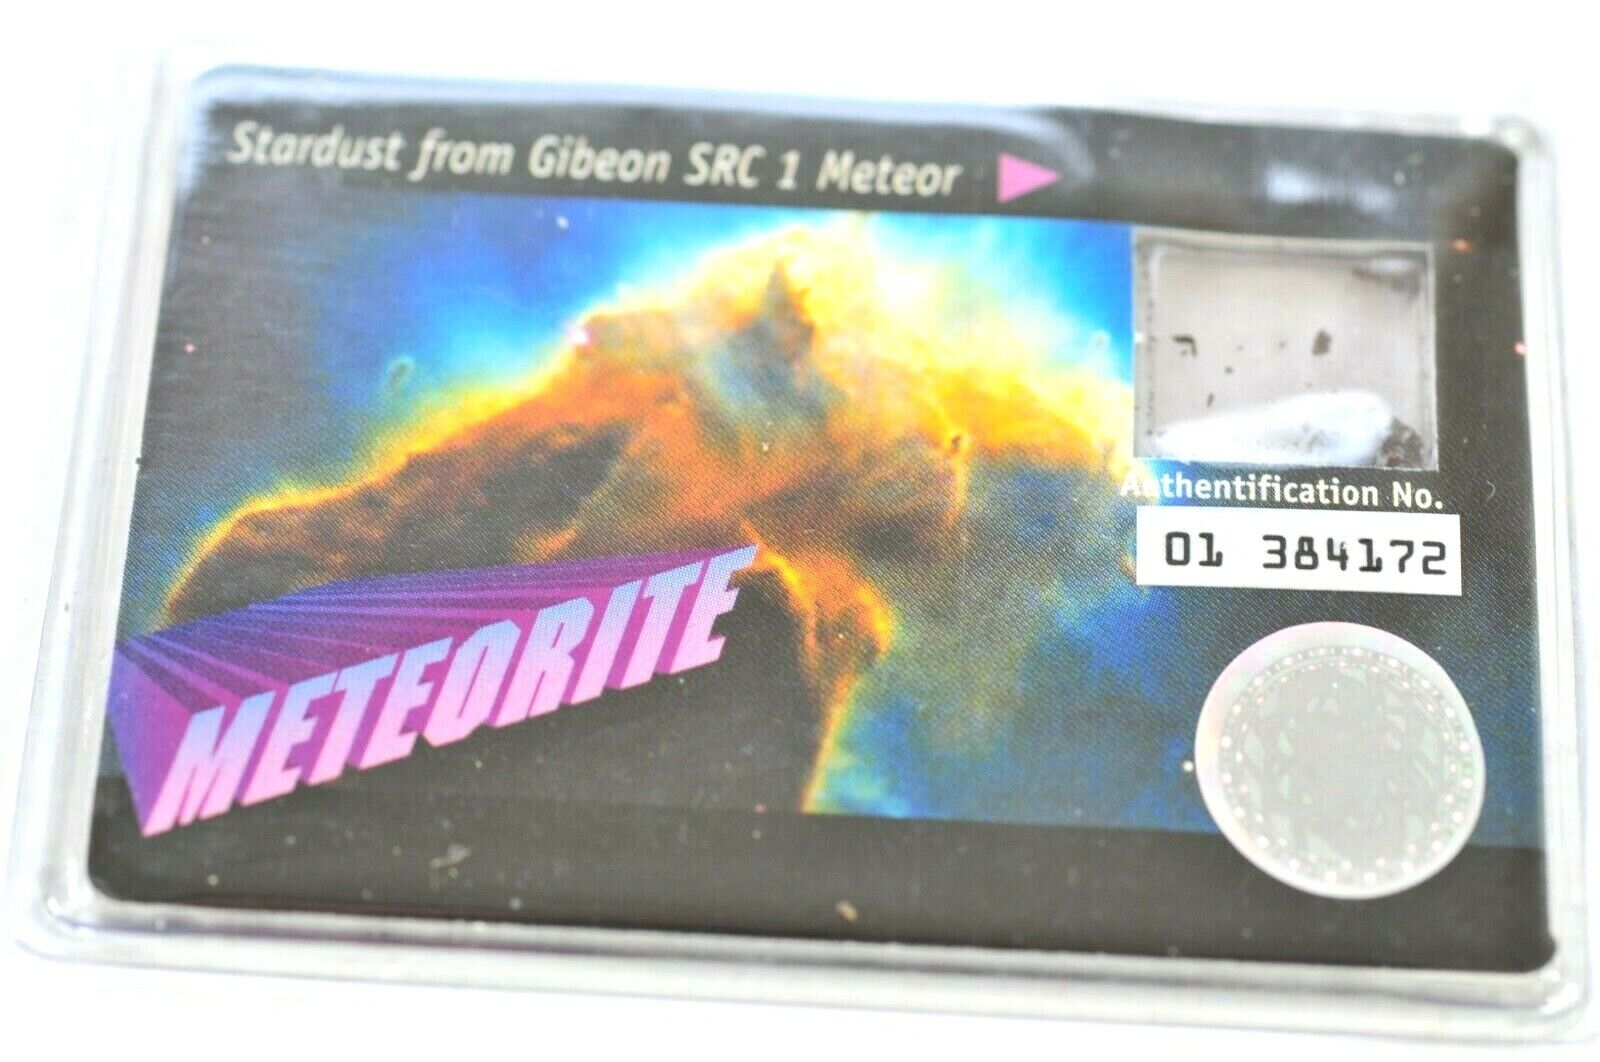 RARE METEORITE STARDUST from GIBEON SRC 1 METEOR - SEALED AUTHENTIFICATION